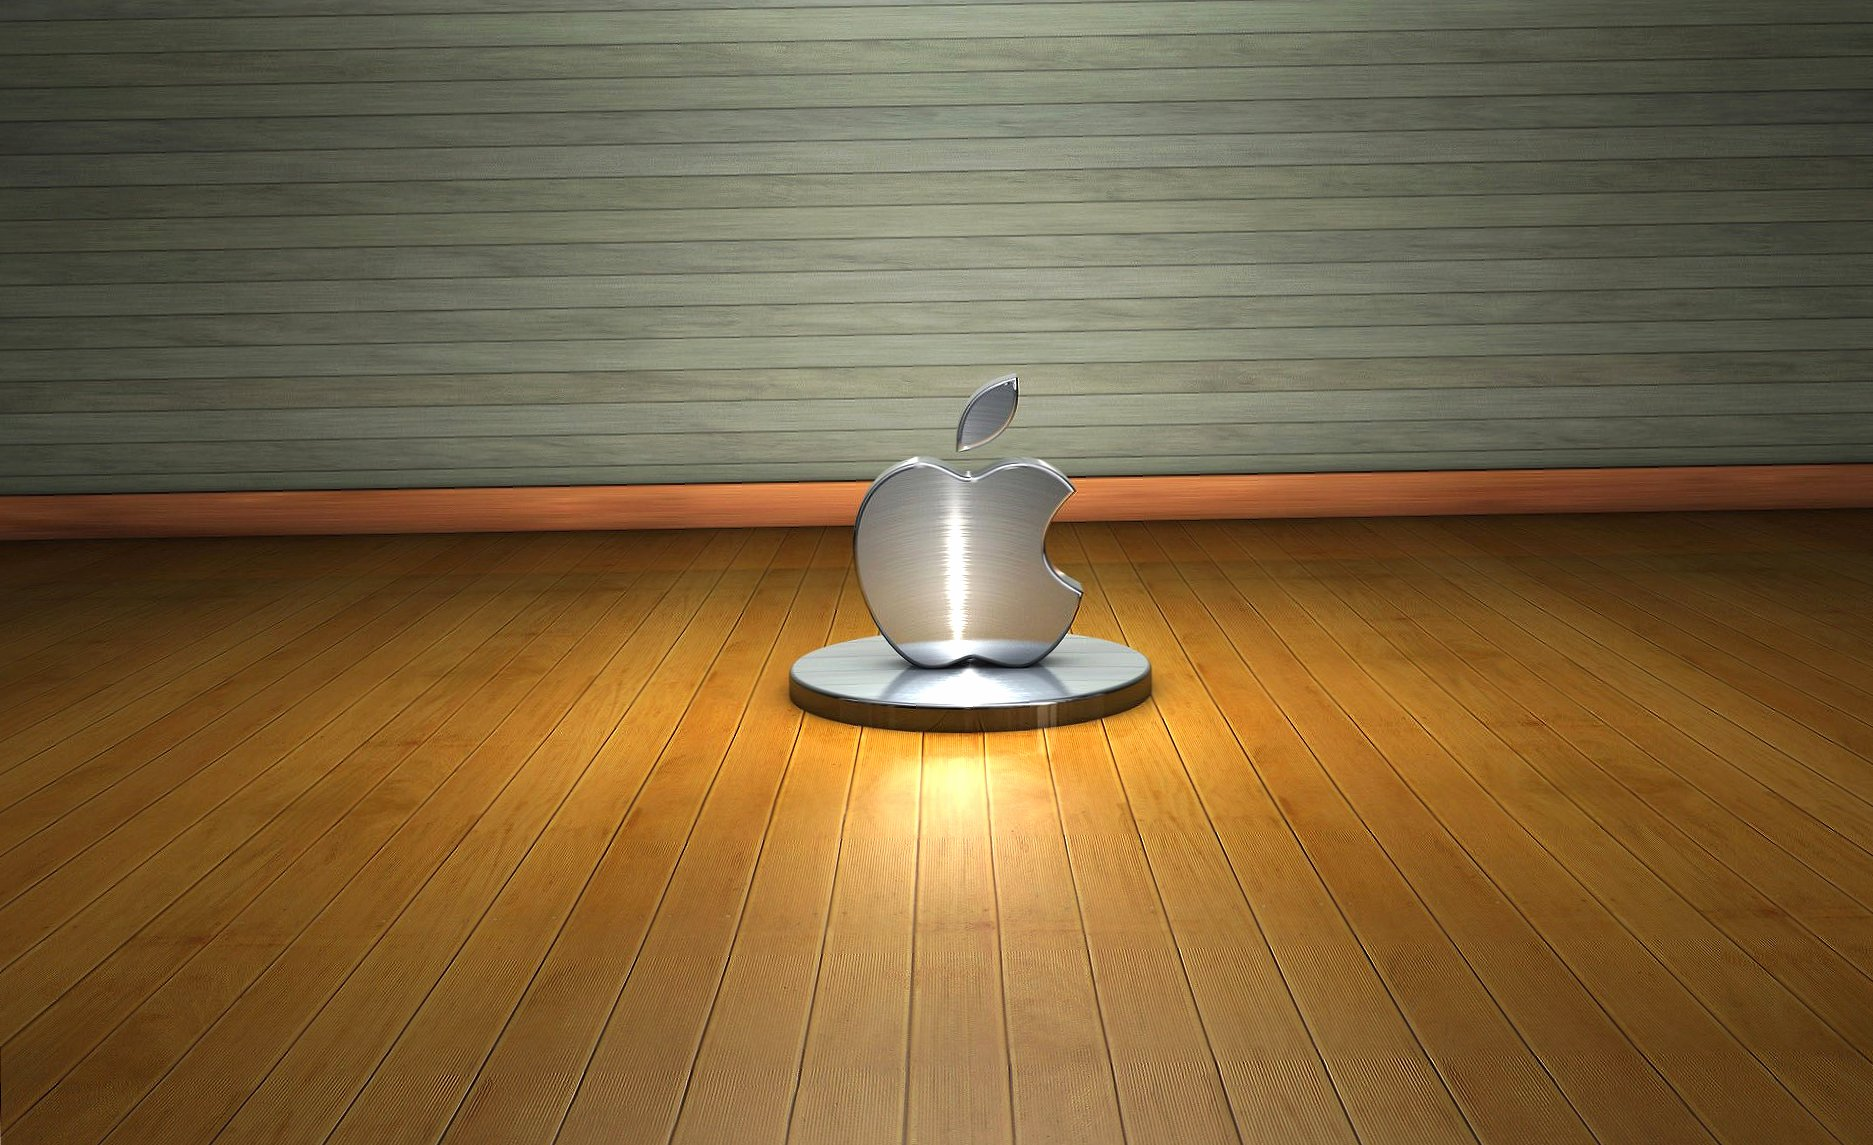 Alluminium apple wallpapers HD quality